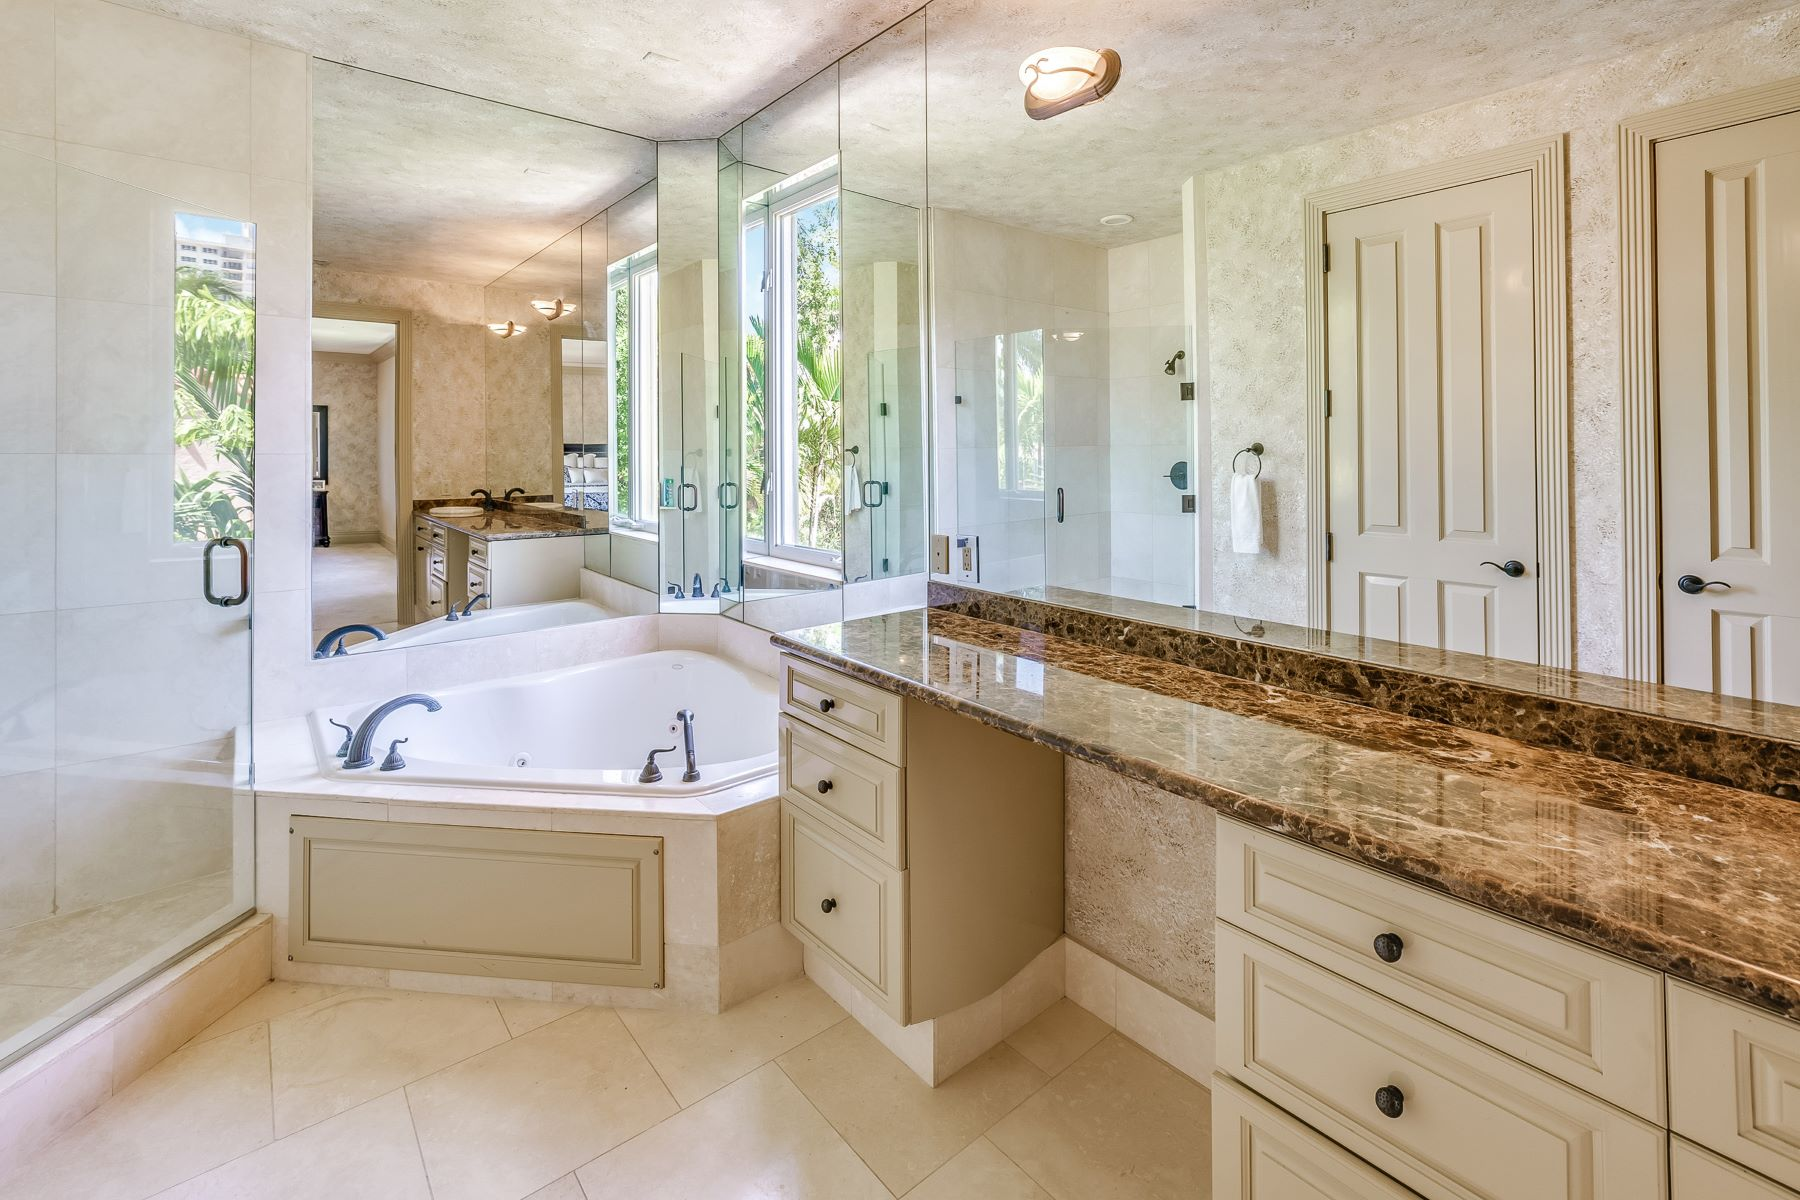 Additional photo for property listing at 414 Riviera Isle 414 Riviera Isle Fort Lauderdale, Florida 33301 États-Unis